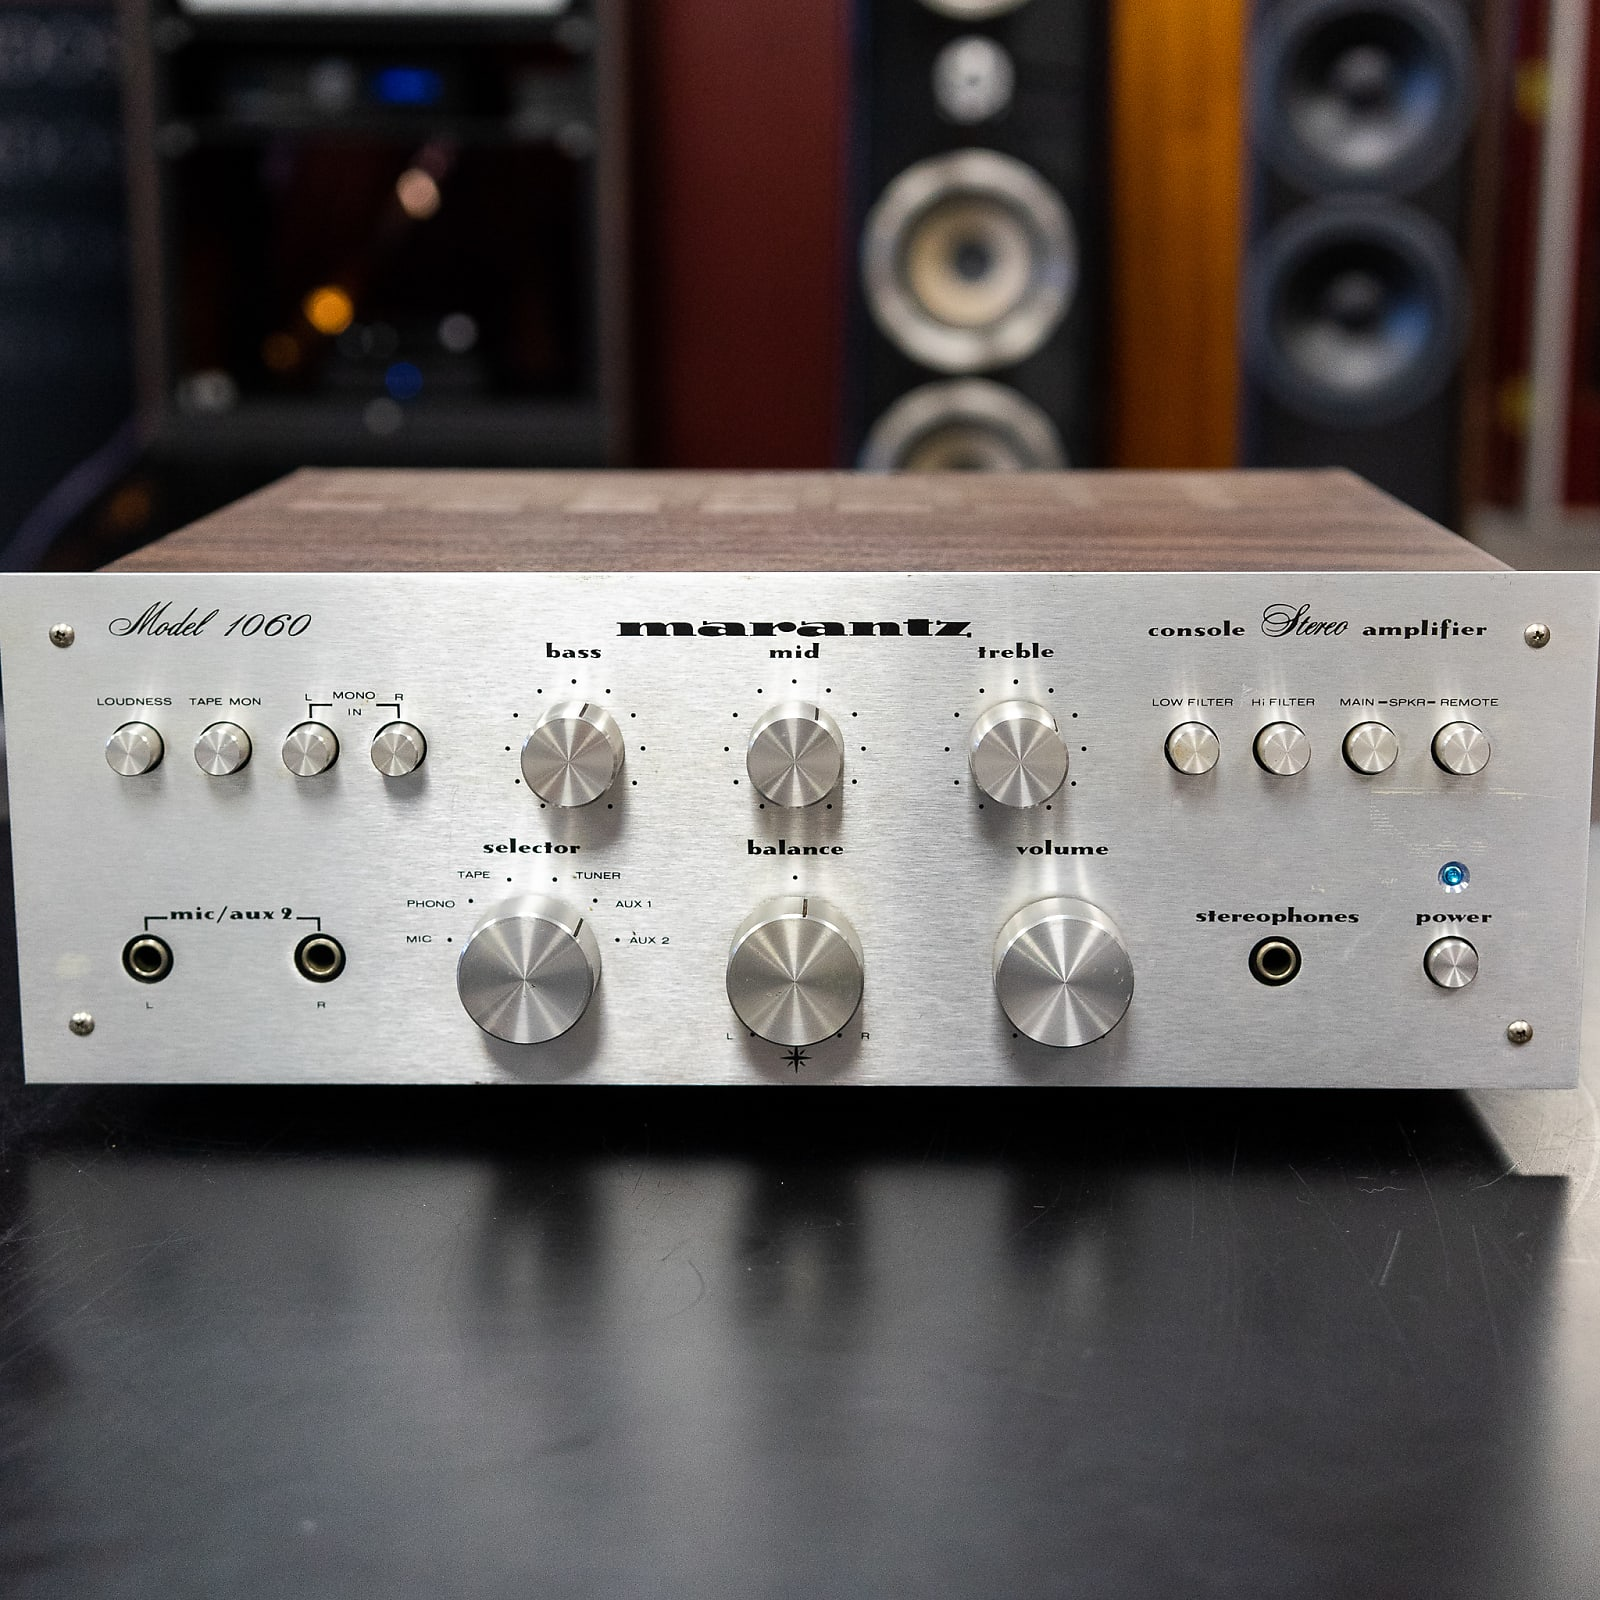 Marantz 1060 Stereo Integrated Amplifier - Refurbished